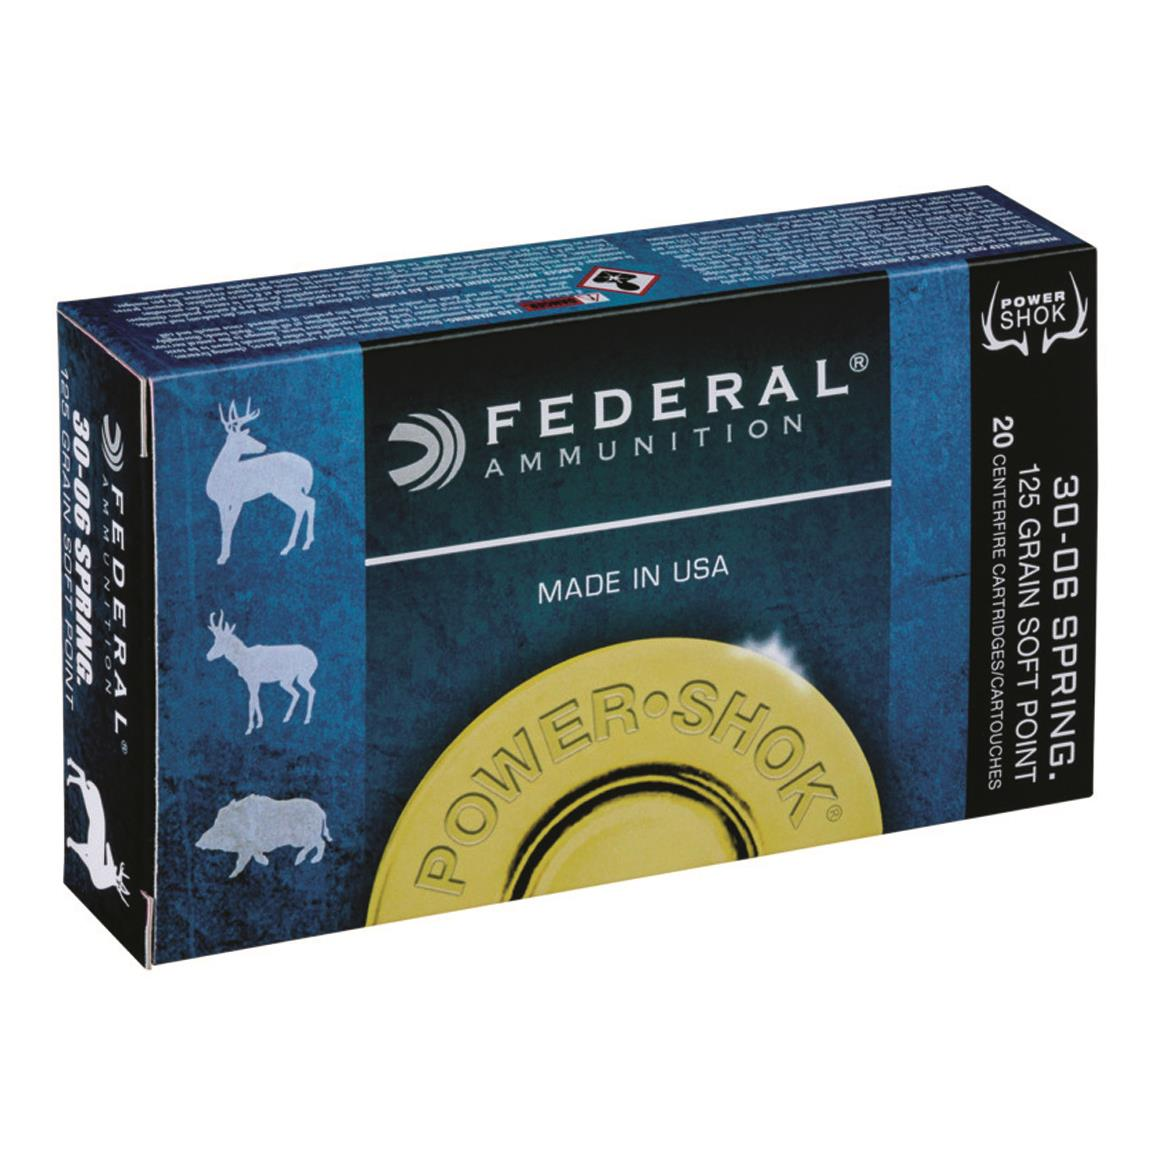 Federal Power-Shok 7mm Win. Short Mag, SP, 150 Grain, 20 Rounds